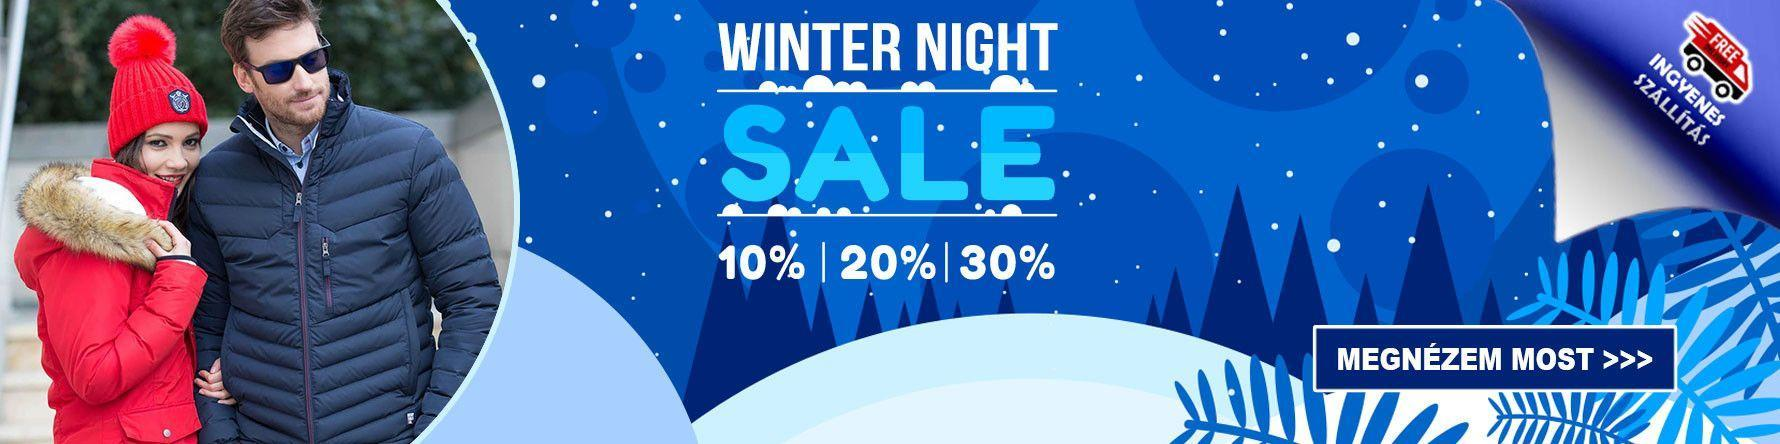 WINTER NIGHT SALE